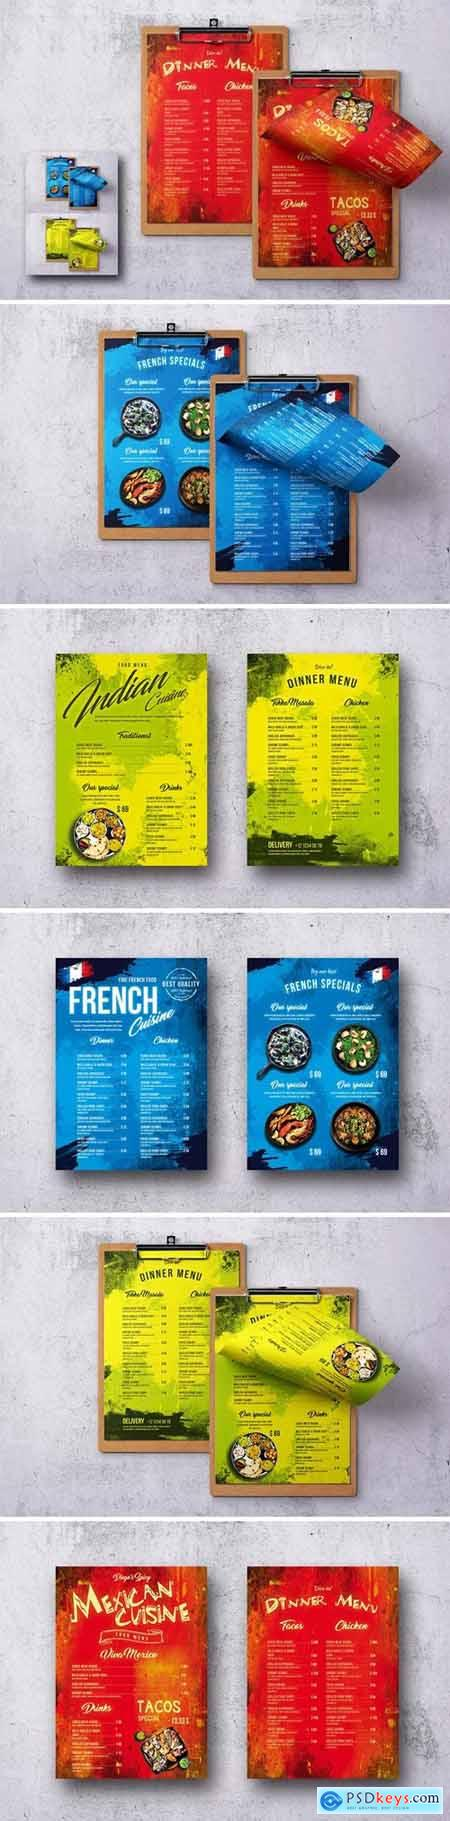 Different Countries Single Page Food Menu Bundle